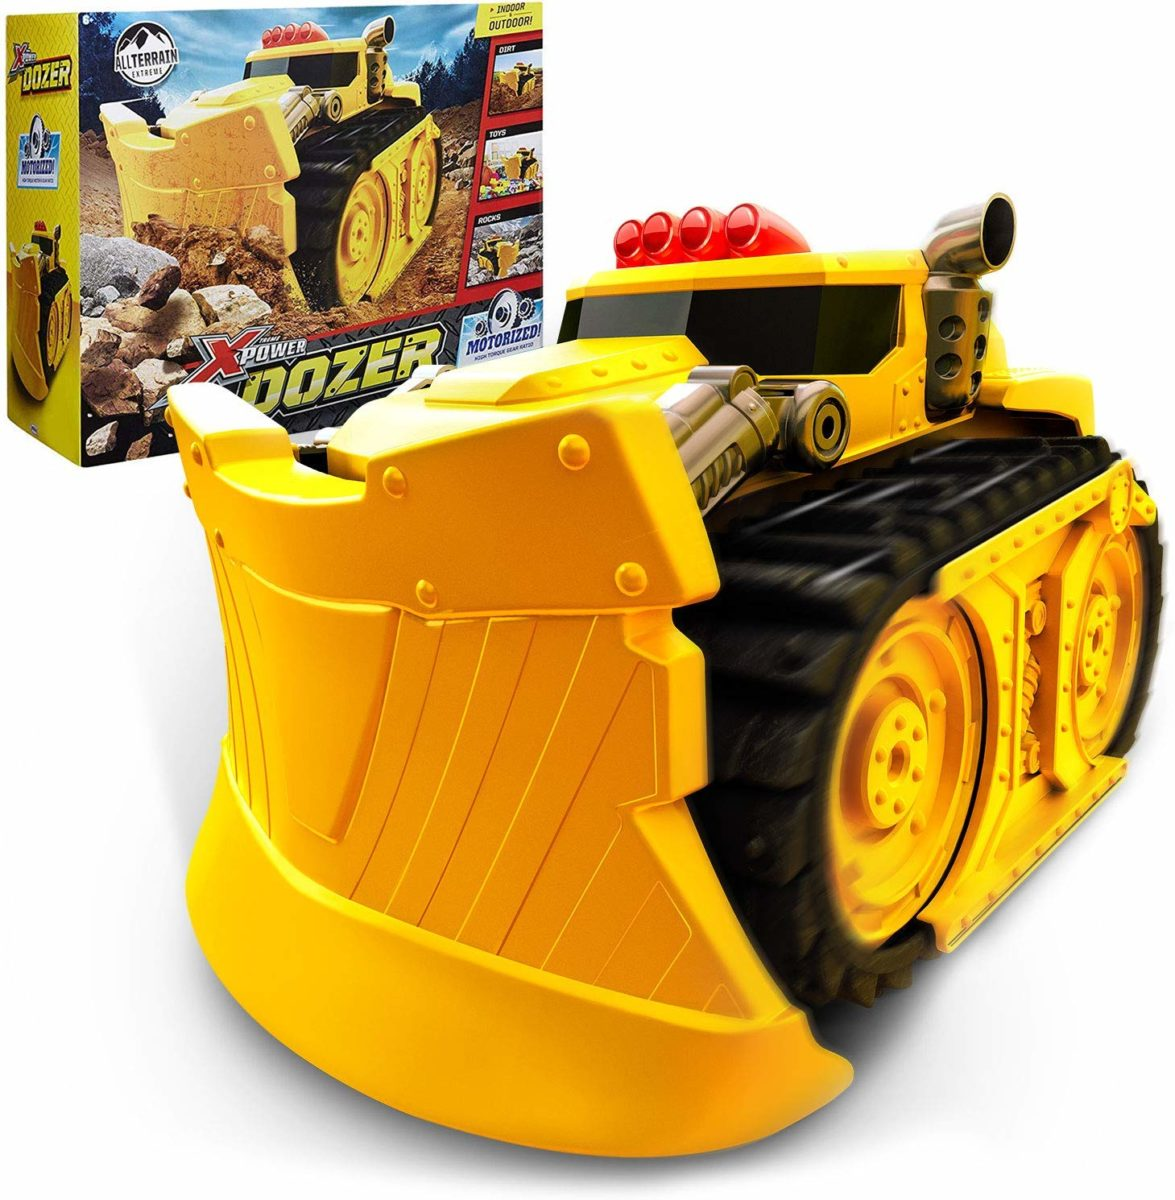 Xtreme Power Dozer Motorized Extreme Bulldozer Toy Truck - Top Toys and Gifts for Six Year Old Boys 1